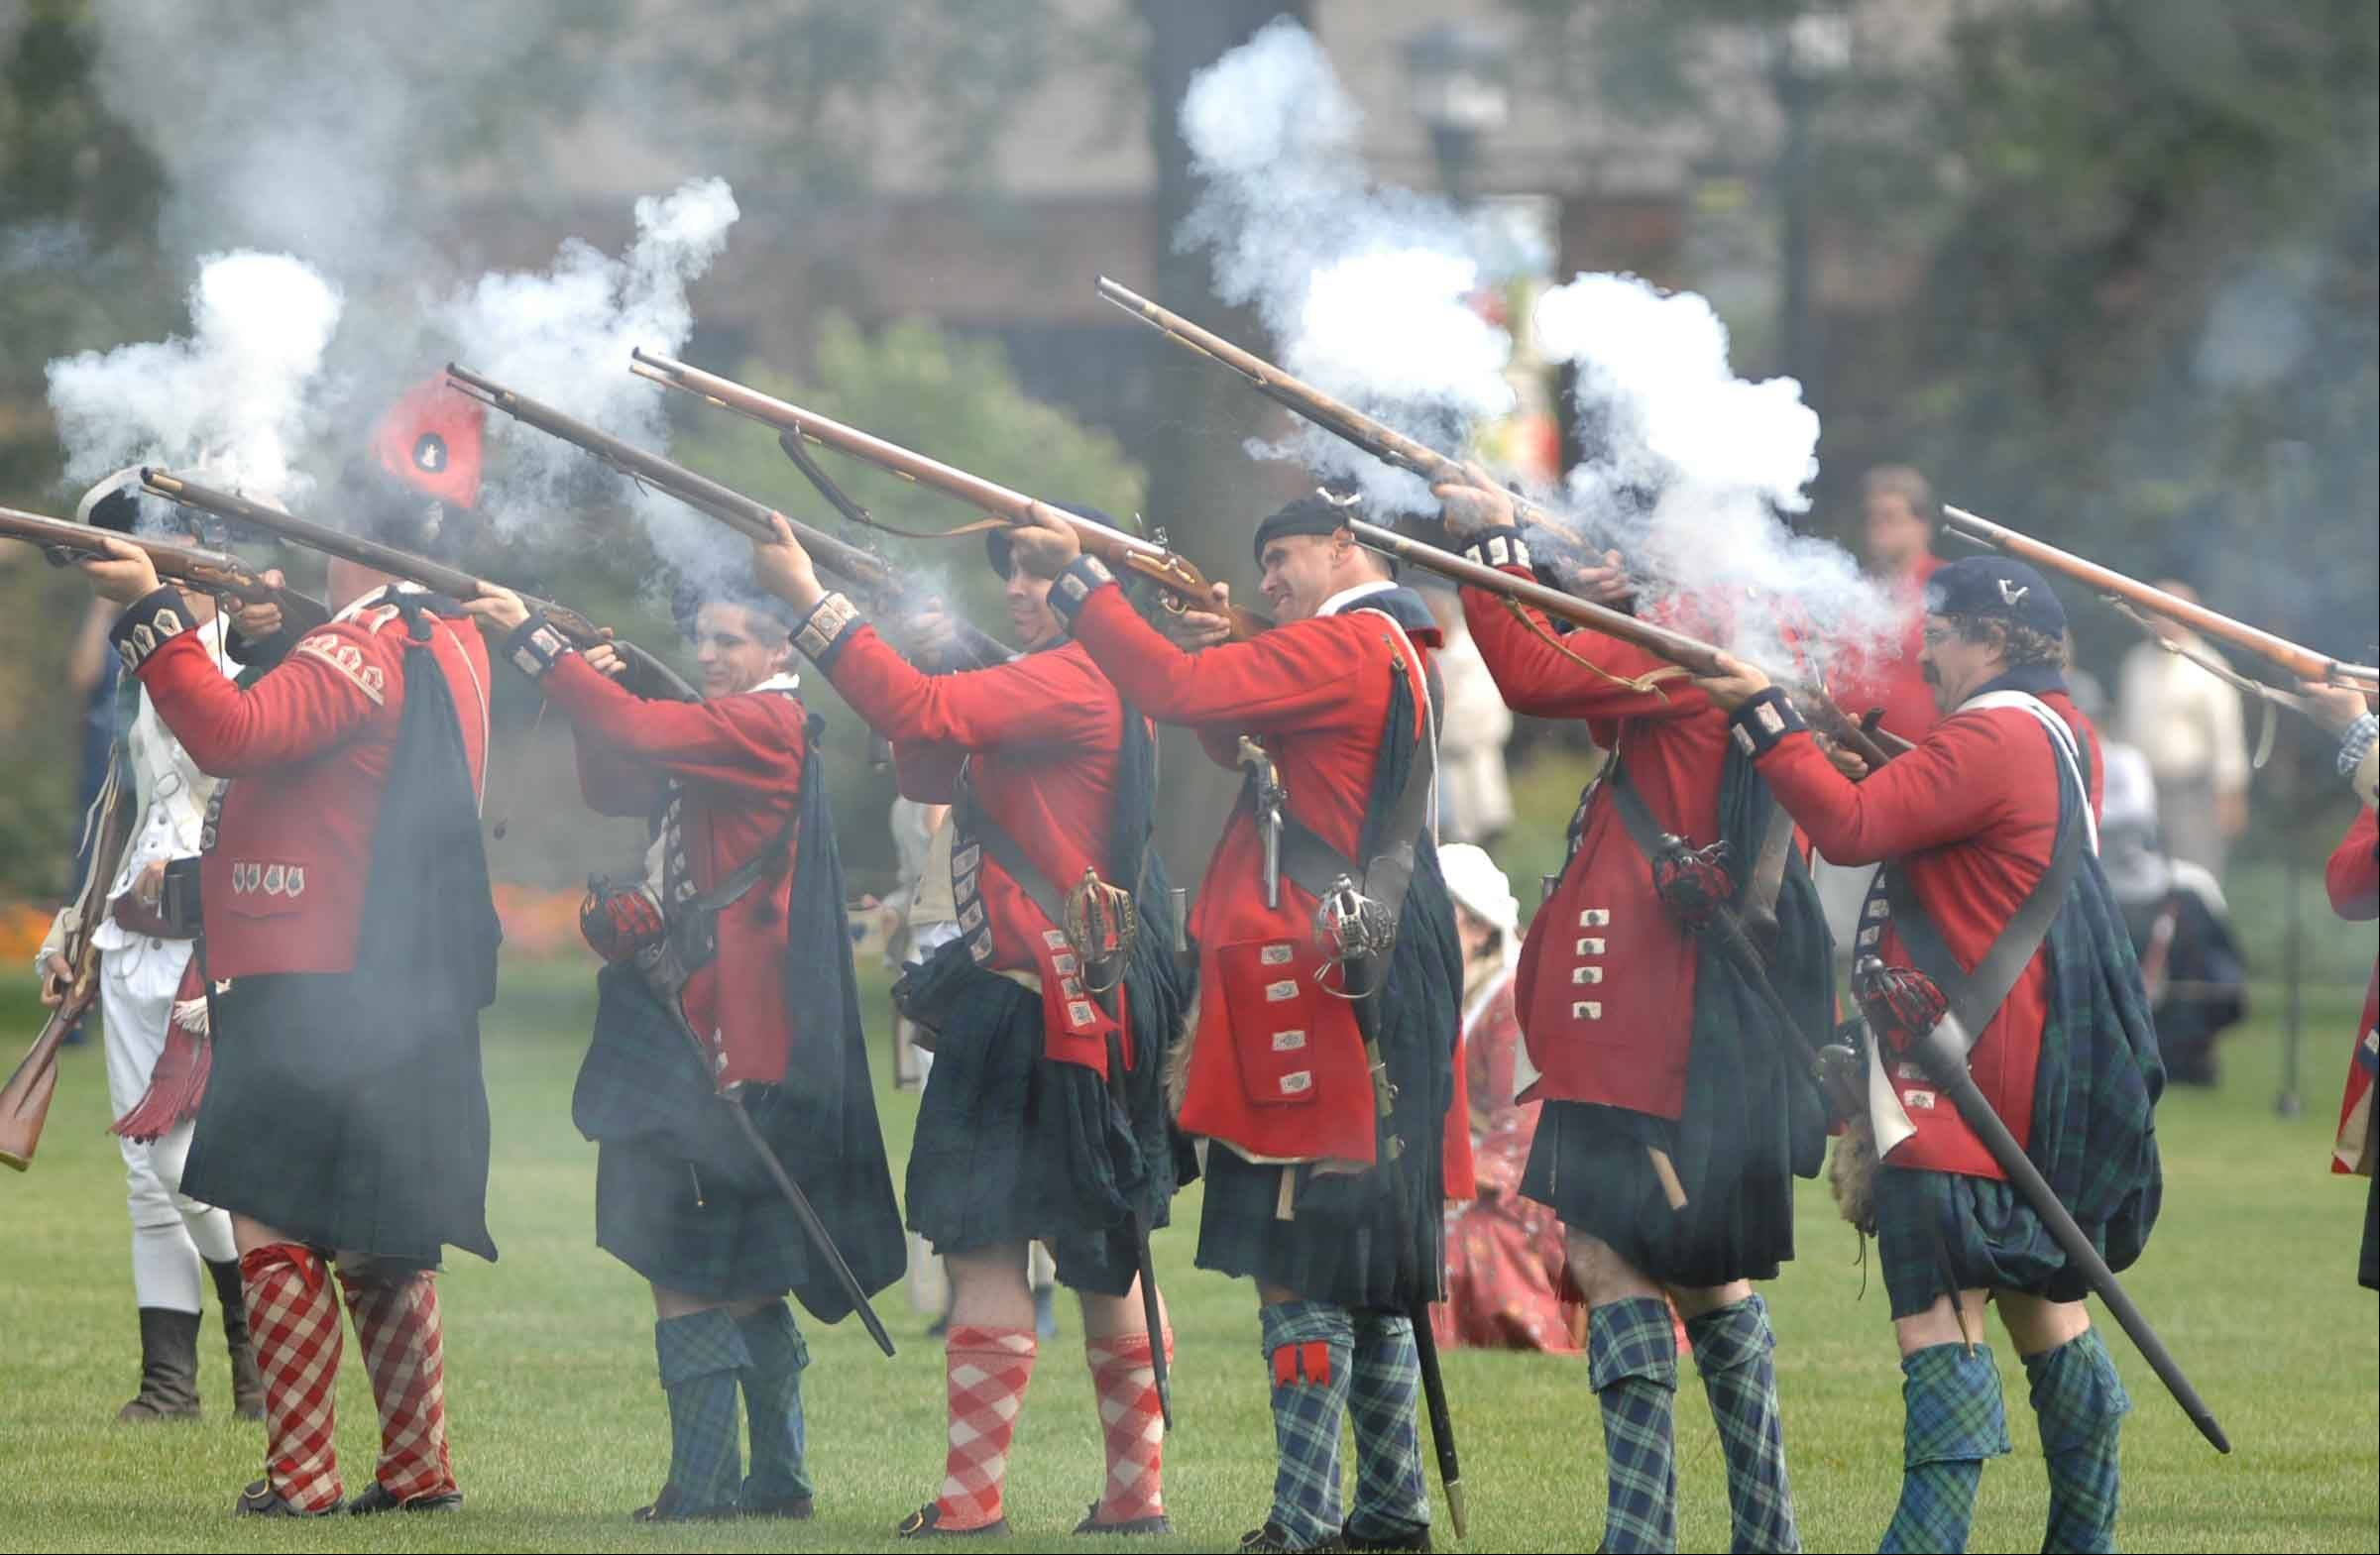 Re-enactors portraying British soldiers will take up their guns in two battles both Saturday and Sunday at Cantigny Park in Wheaton.